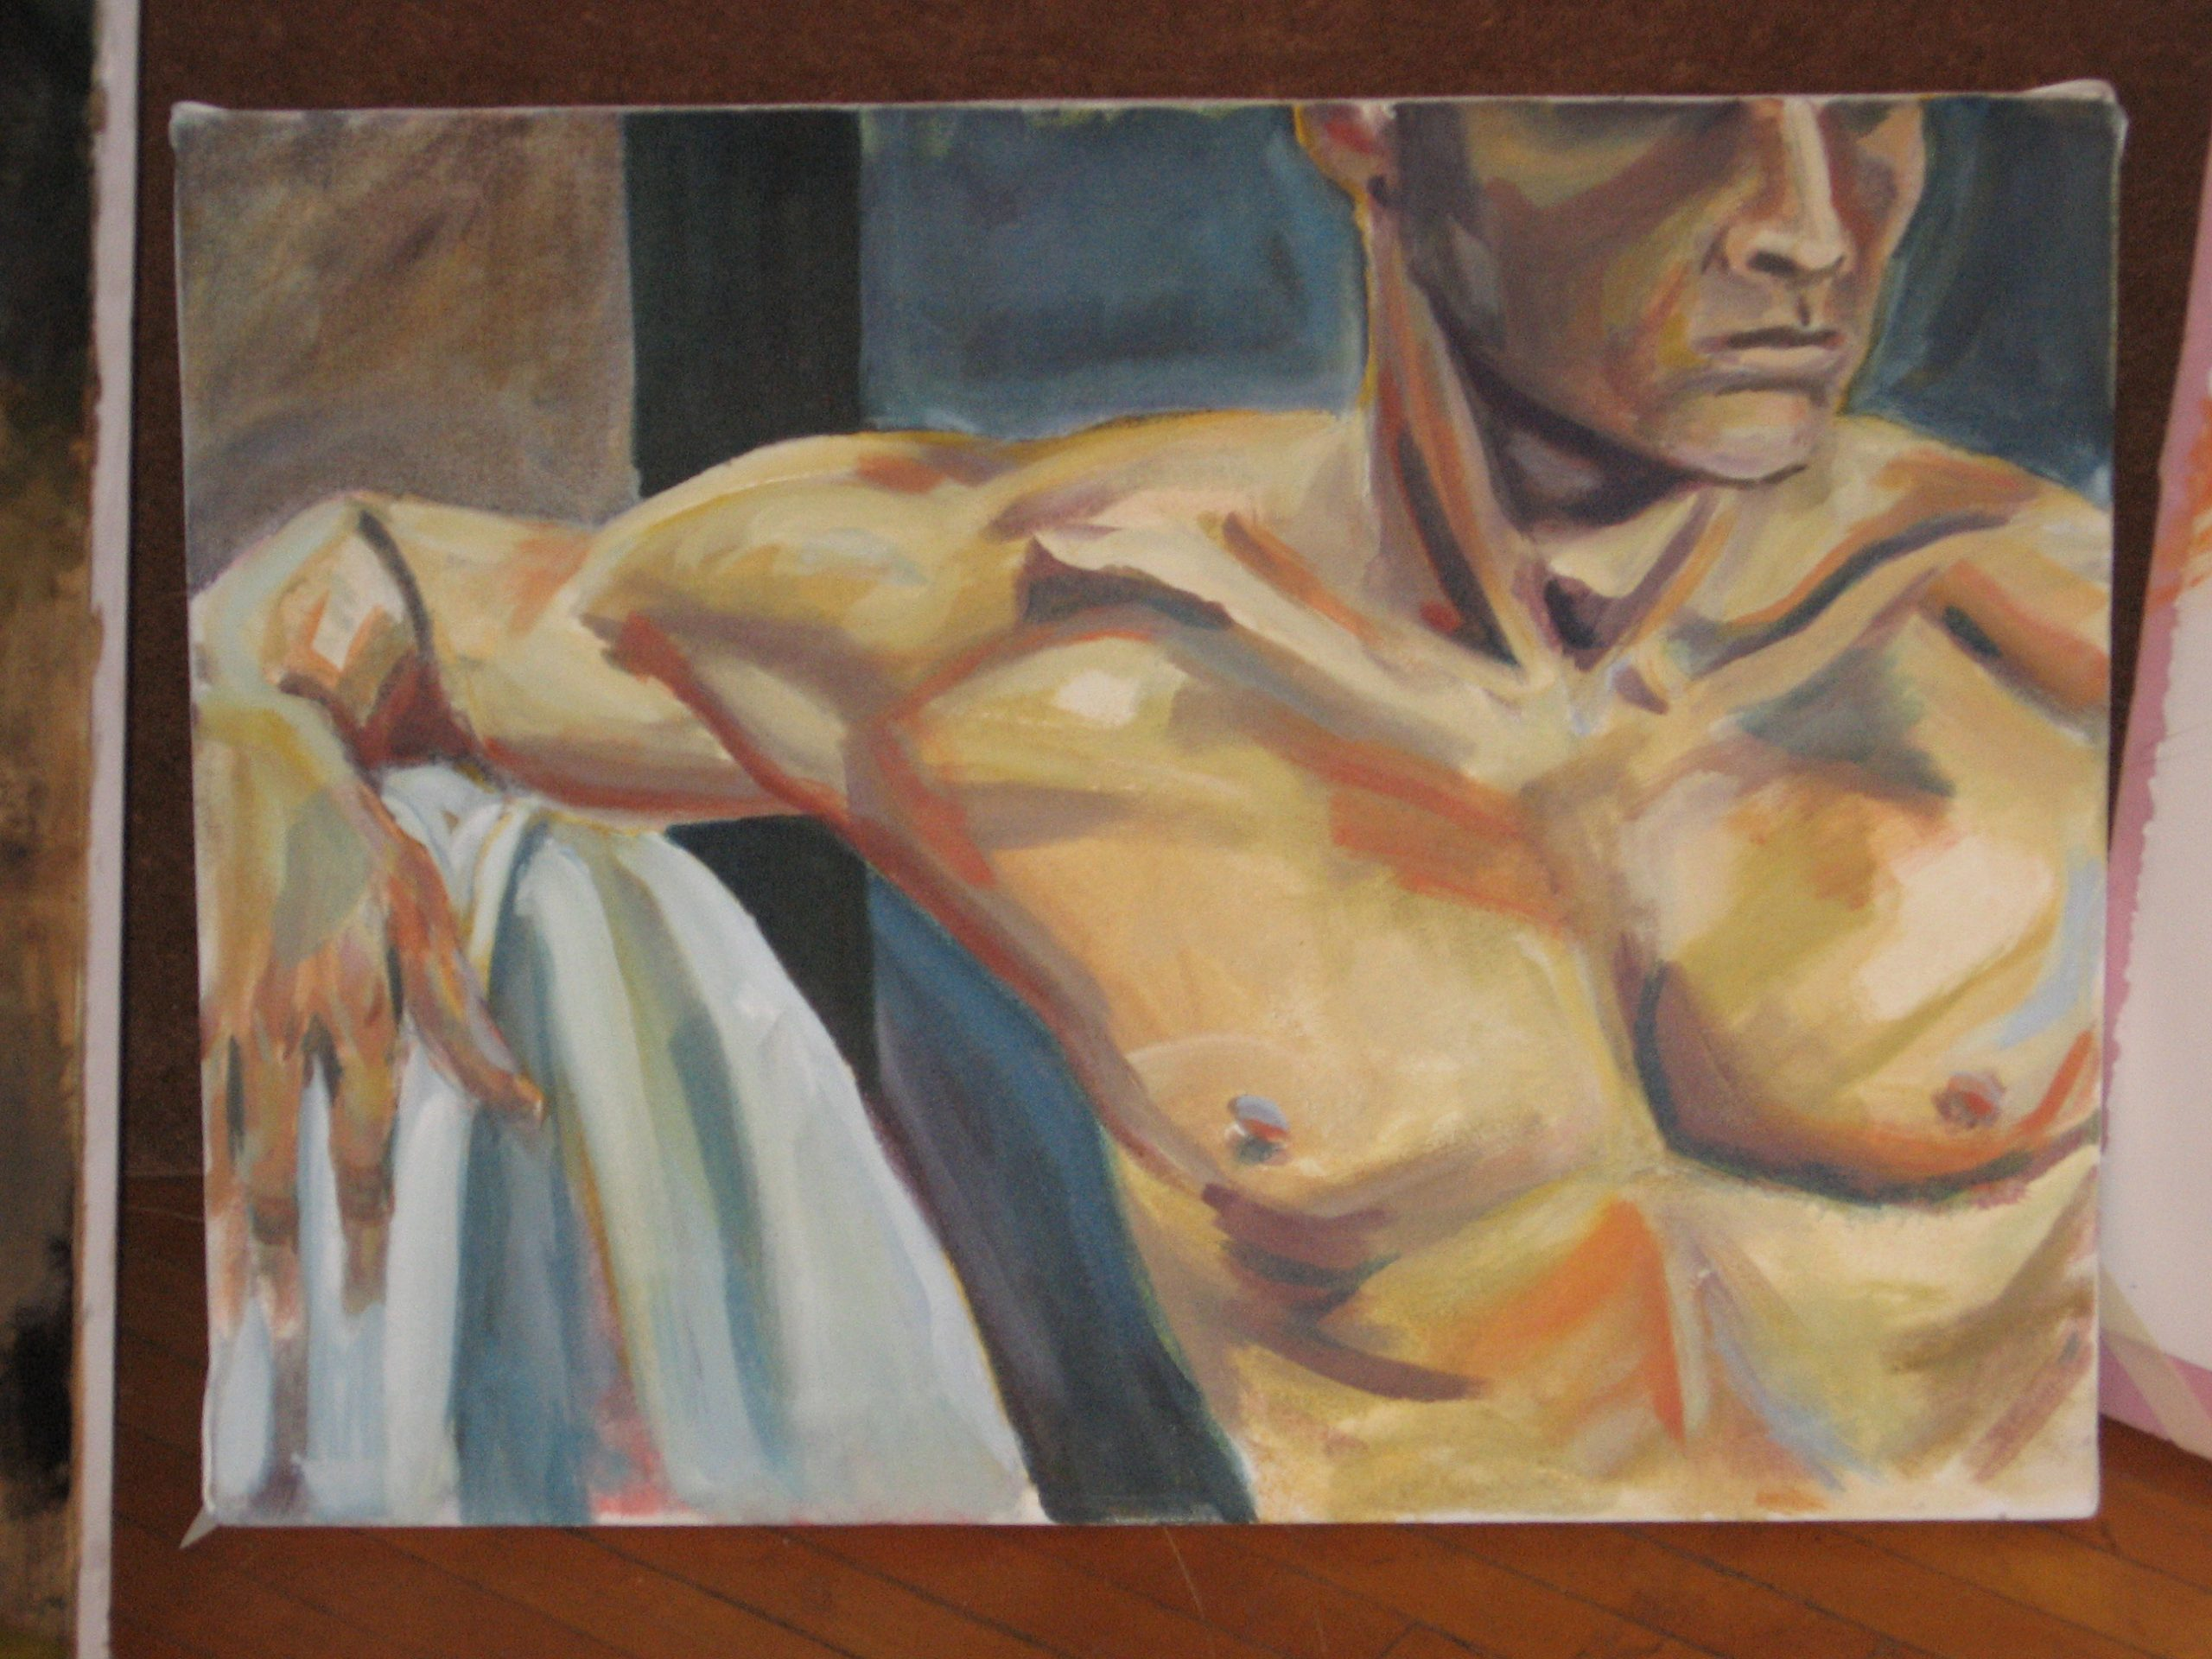 Annali Smucker's painting of Dirk Liechty on canvas in oil